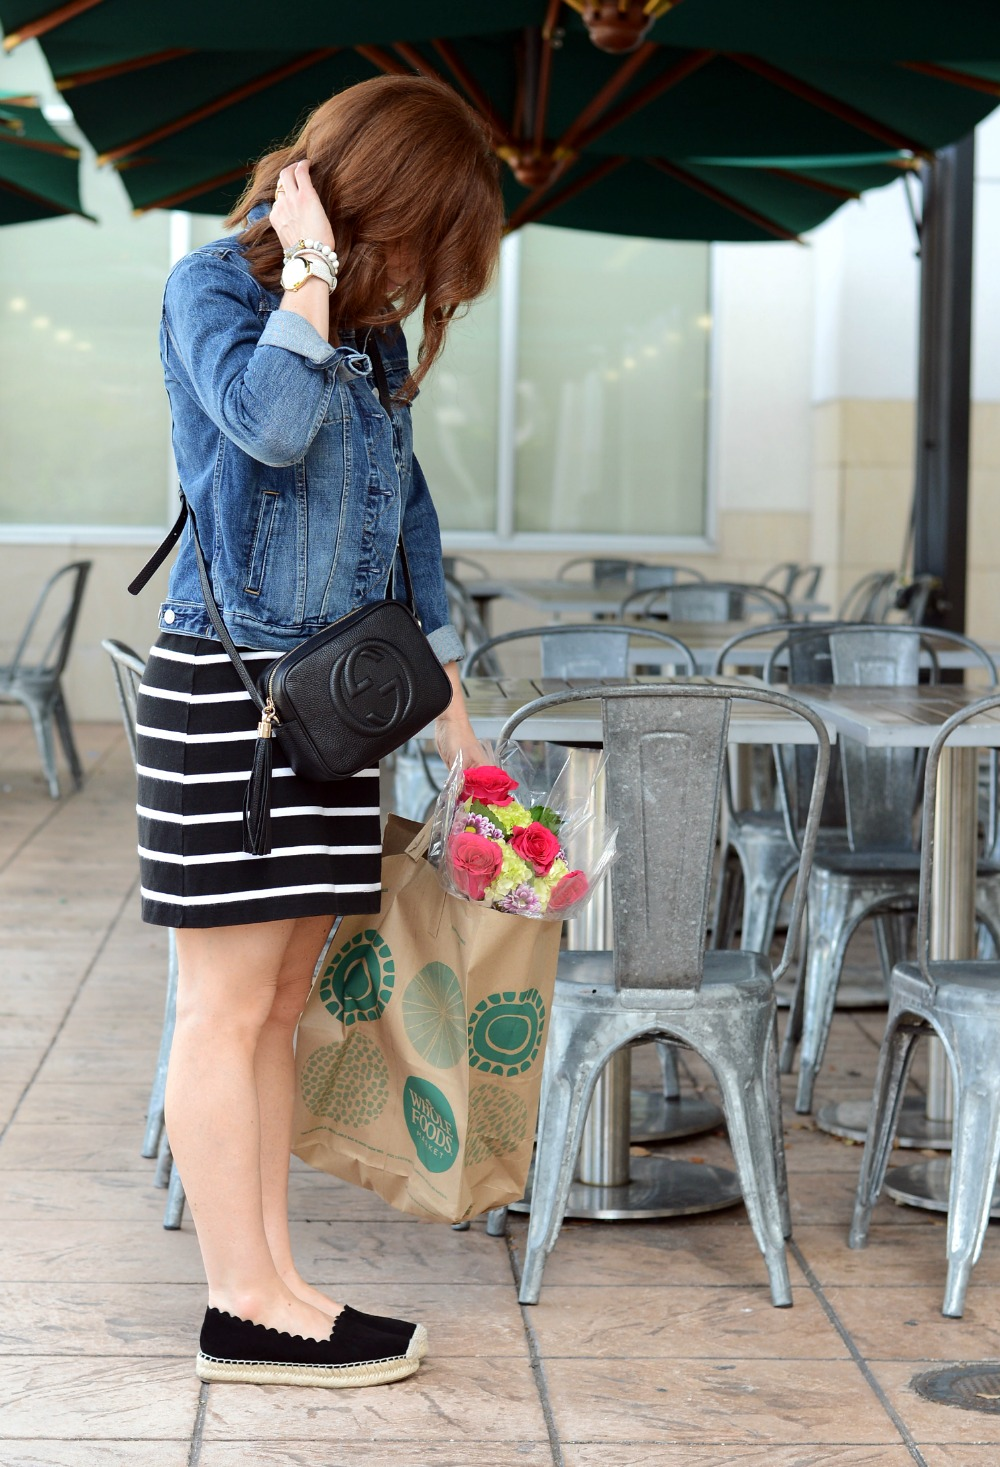 Classic outfit combo: Striped dress & denim jacket // the modern savvy